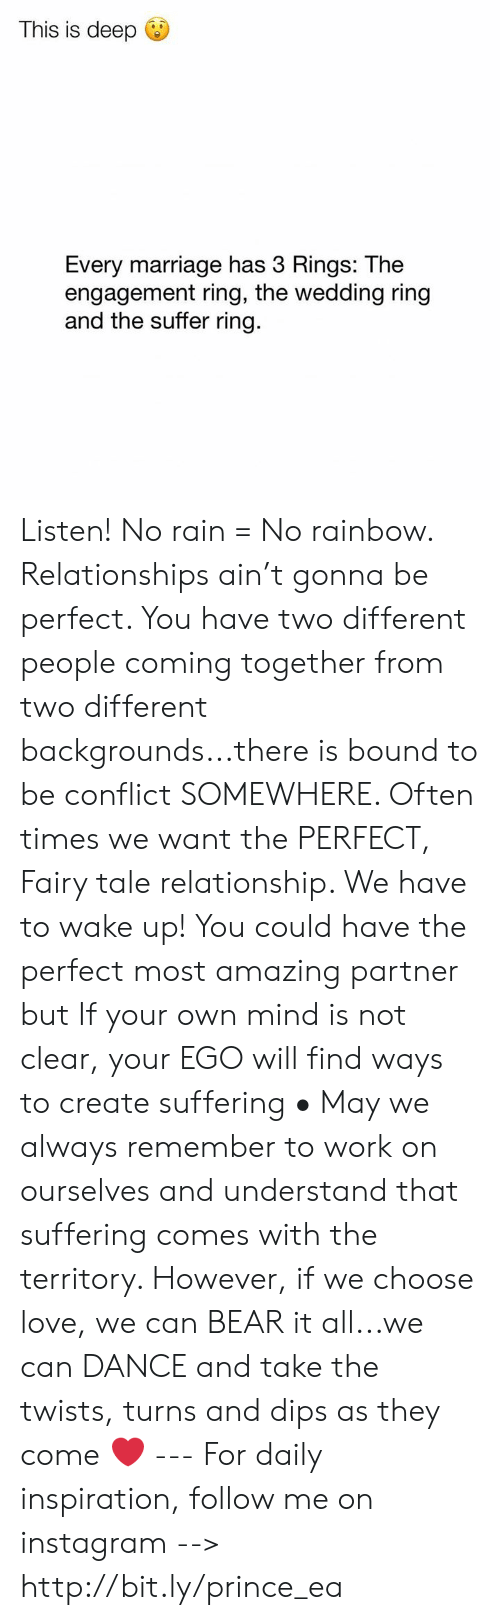 fairy tale: This is deep  Every marriage has 3 Rings: The  engagement ring, the wedding ring  and the suffer ring. Listen! No rain = No rainbow. Relationships ain't gonna be perfect. You have two different people coming together from two different backgrounds...there is bound to be conflict SOMEWHERE. Often times we want the PERFECT, Fairy tale relationship. We have to wake up! You could have the perfect most amazing partner but If your own mind is not clear, your EGO will find ways to create suffering • May we always remember to work on ourselves and understand that suffering comes with the territory. However, if we choose love, we can BEAR it all...we can DANCE and take the twists, turns and dips as they come ❤️ --- For daily inspiration, follow me on instagram --> http://bit.ly/prince_ea